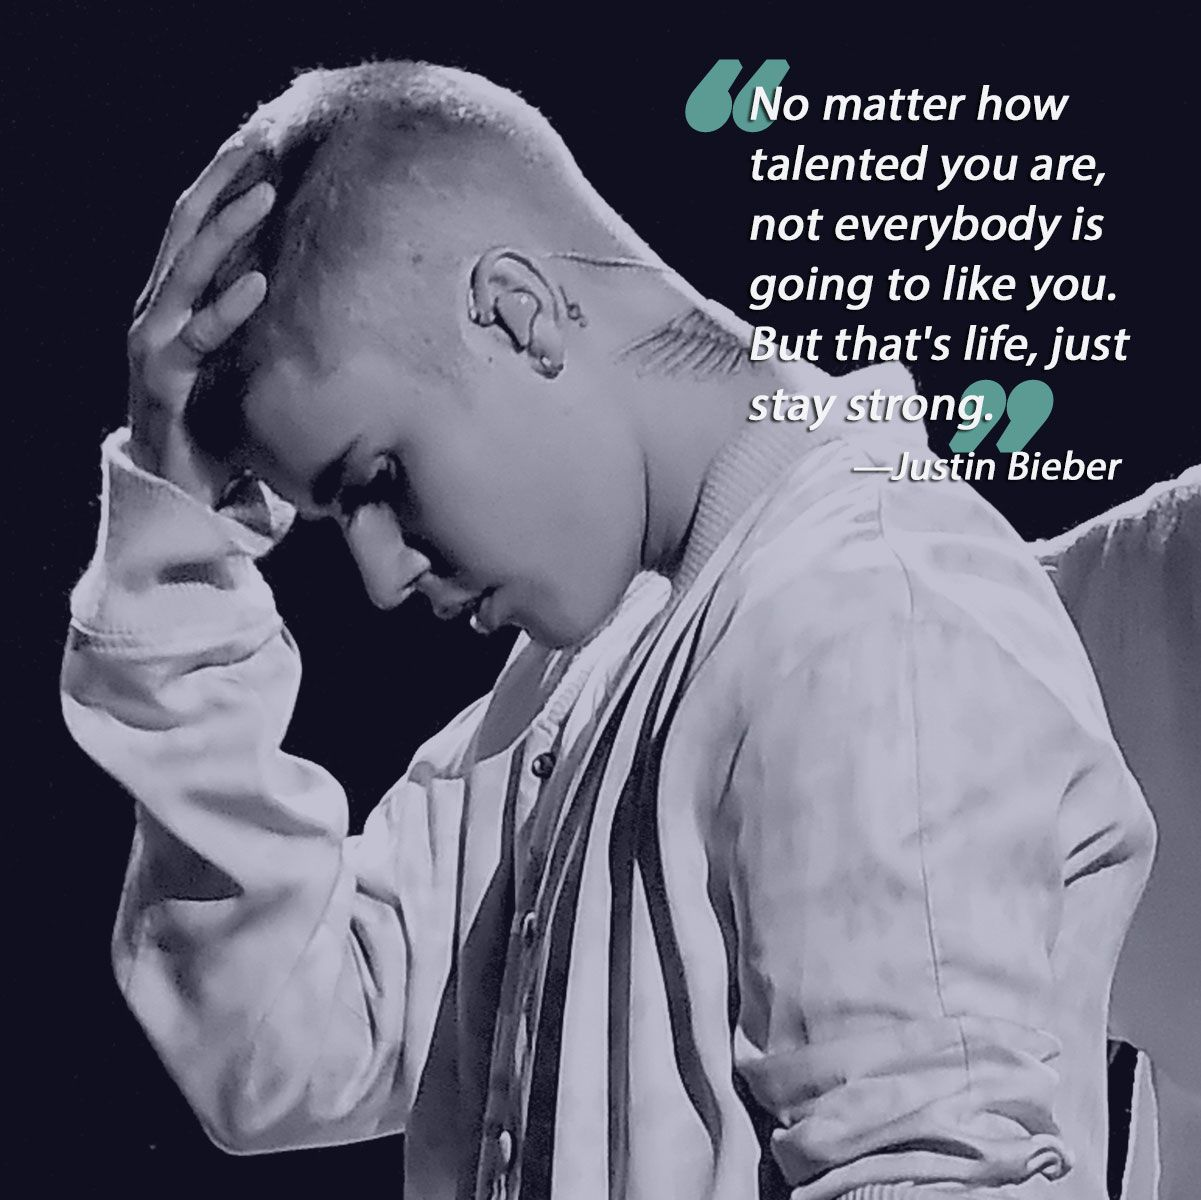 28 Of The Most Inspirational Quotes From Our Favorite Celebrities More Celebration Quotes Justin Bieber Quotes Quotes By Famous People